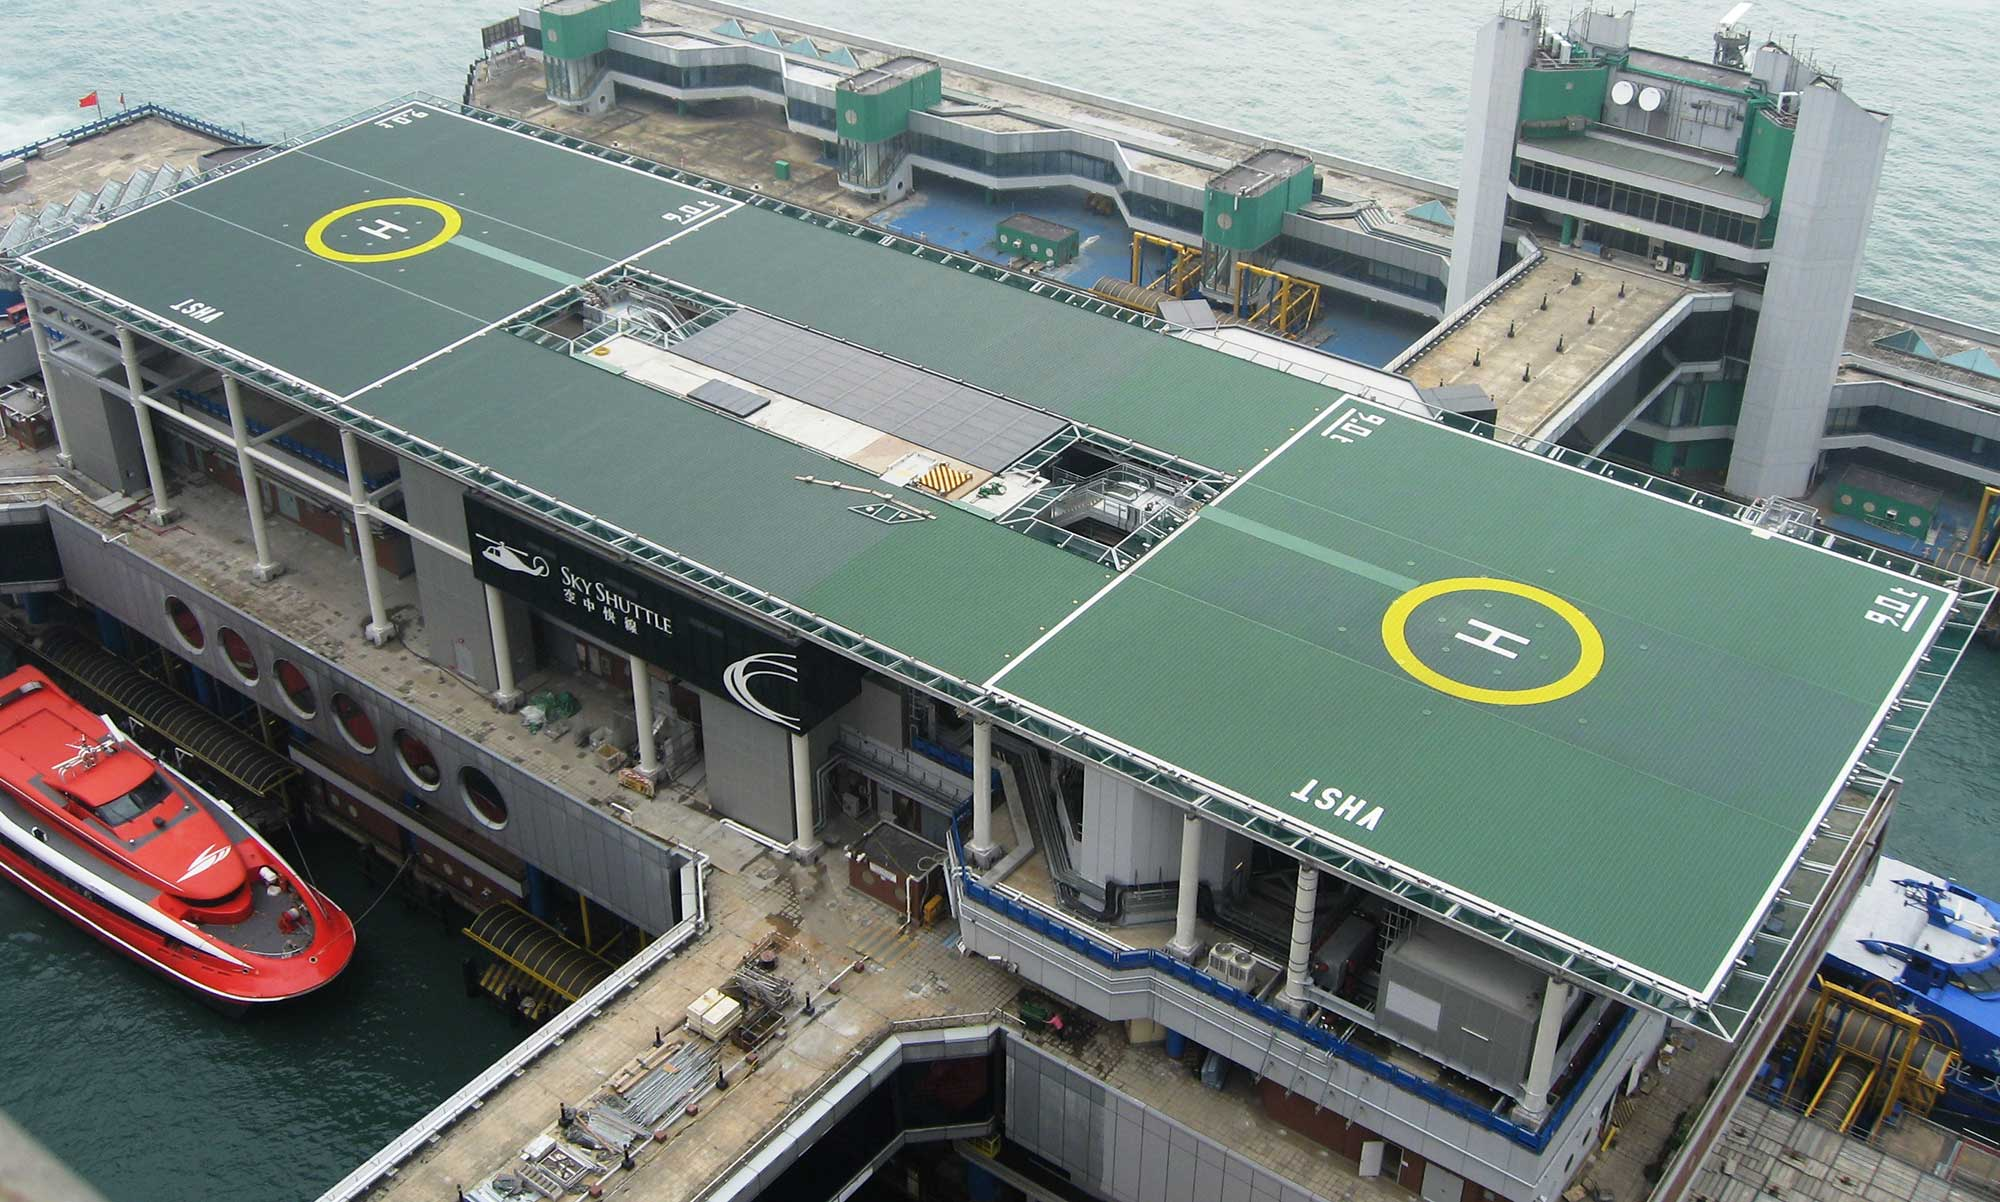 HK-MFT-astech-safety-helipad--world's-largest-helipad-110m-x-34m-with-dual-heliports